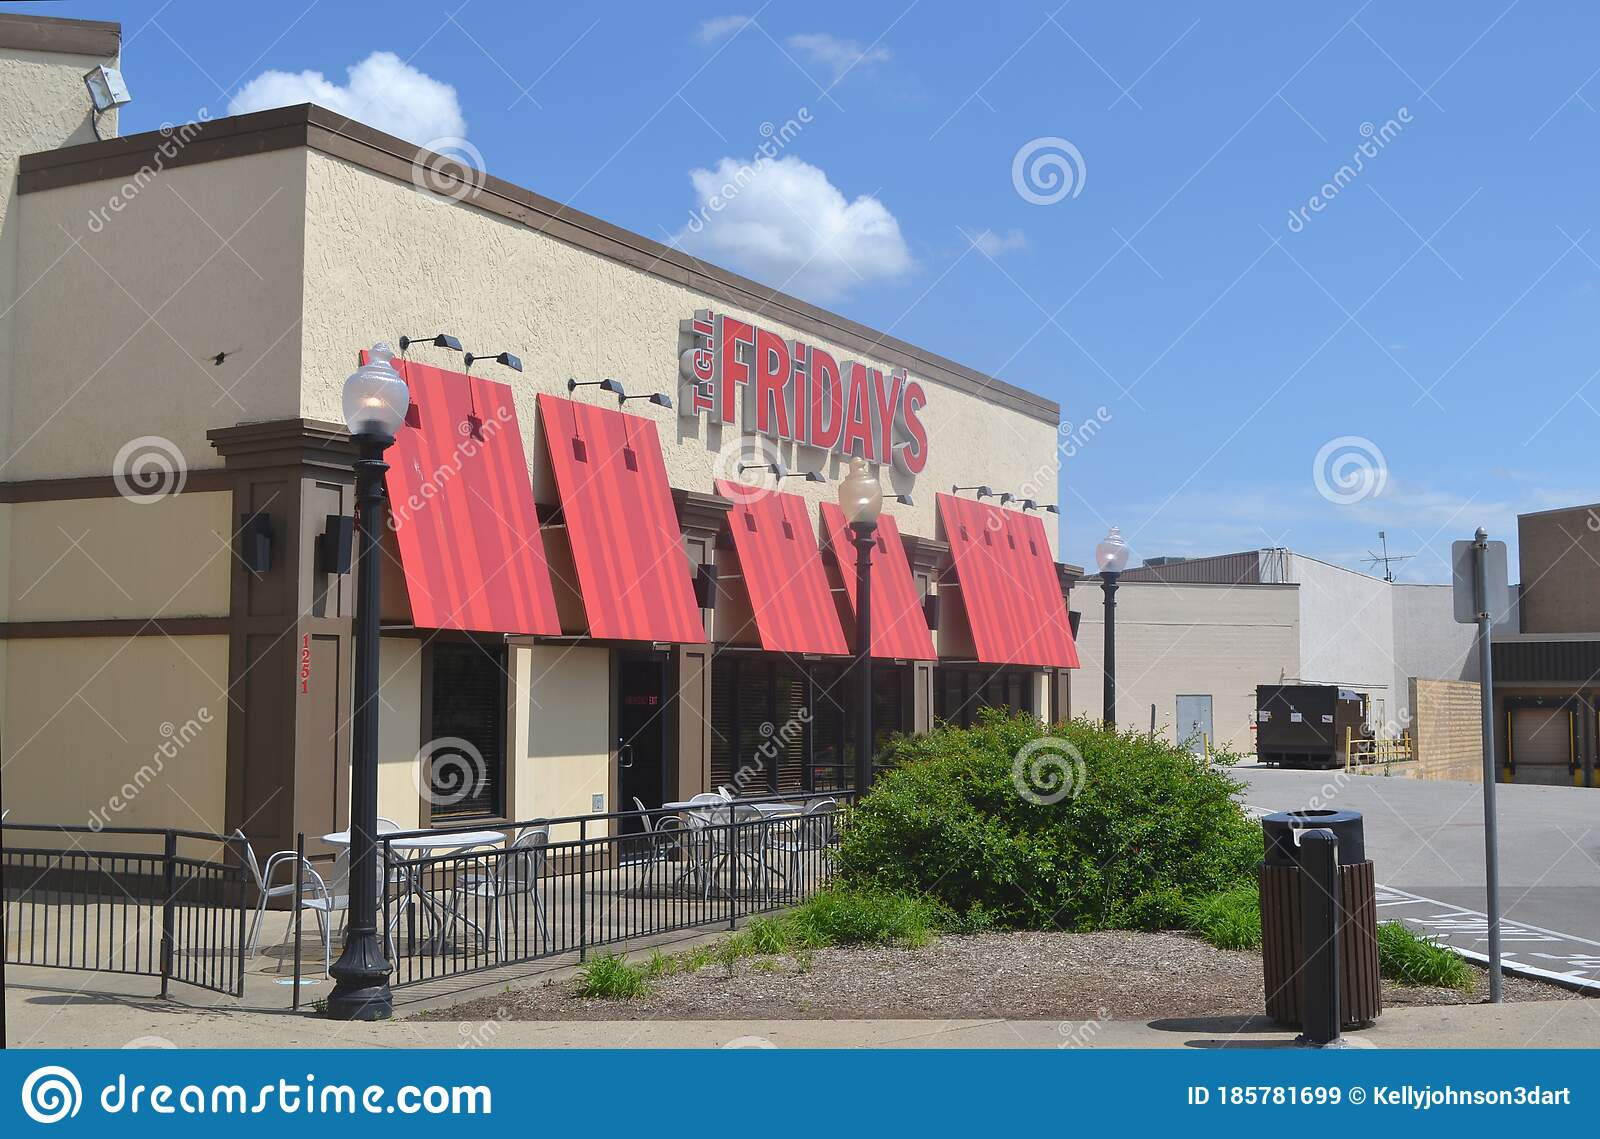 Friday S Outdoor Restaurant Signage Summertime Signage Editorial Stock Image Image Of Eating Company 185781699